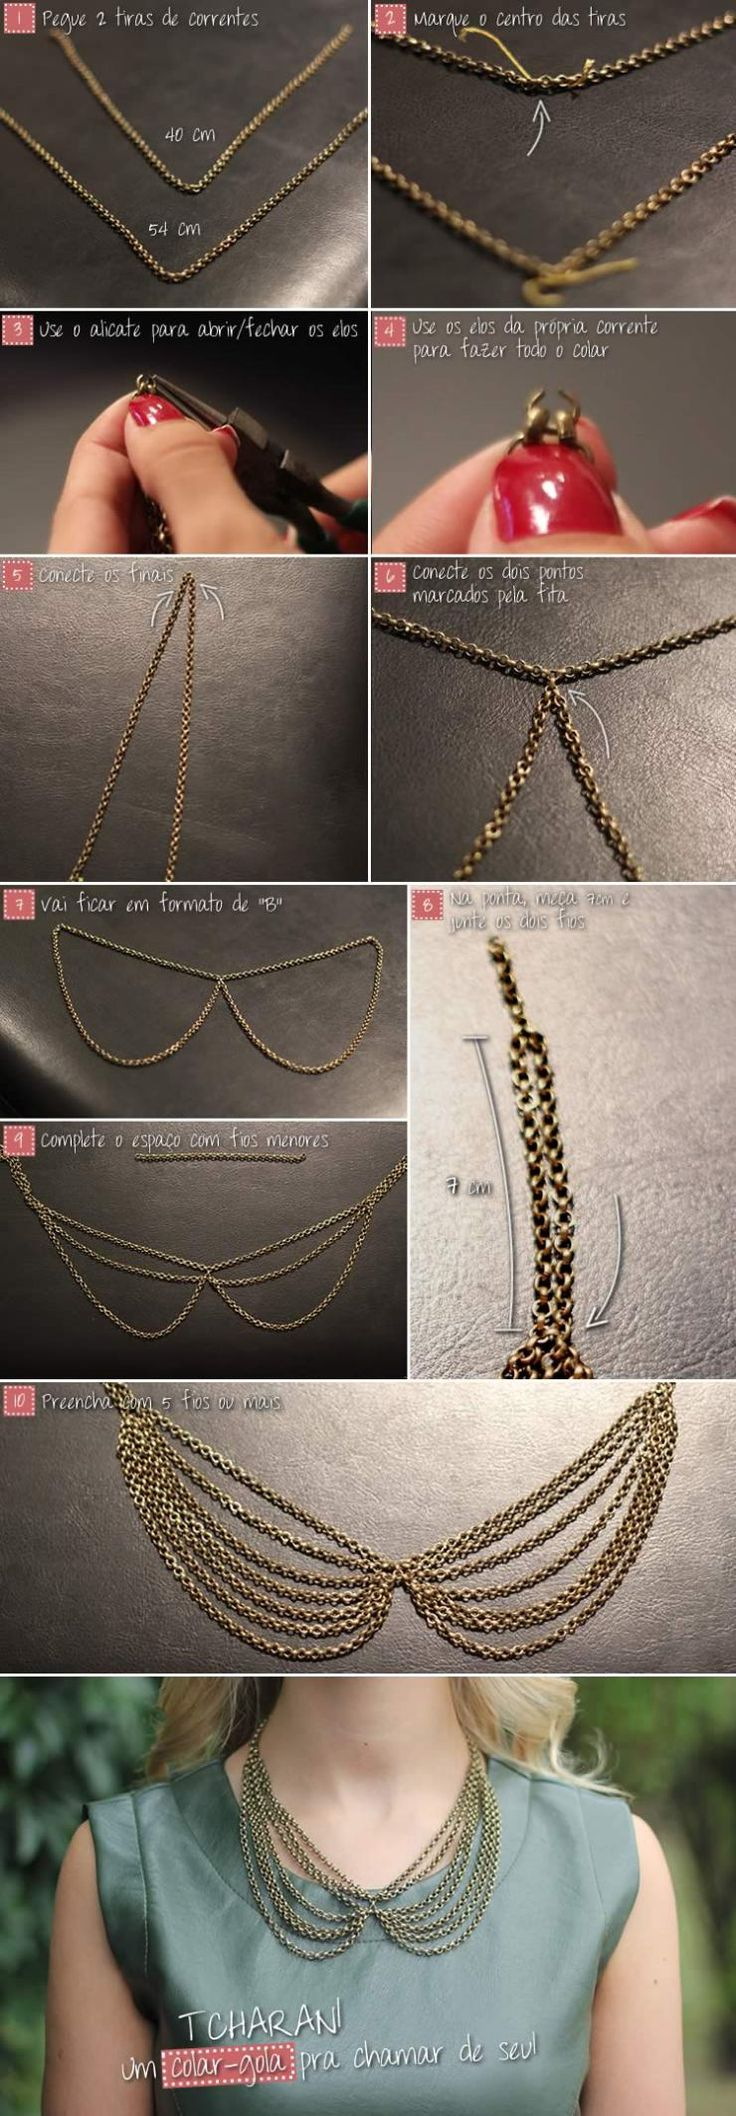 best diy projects images on pinterest craft business ideas